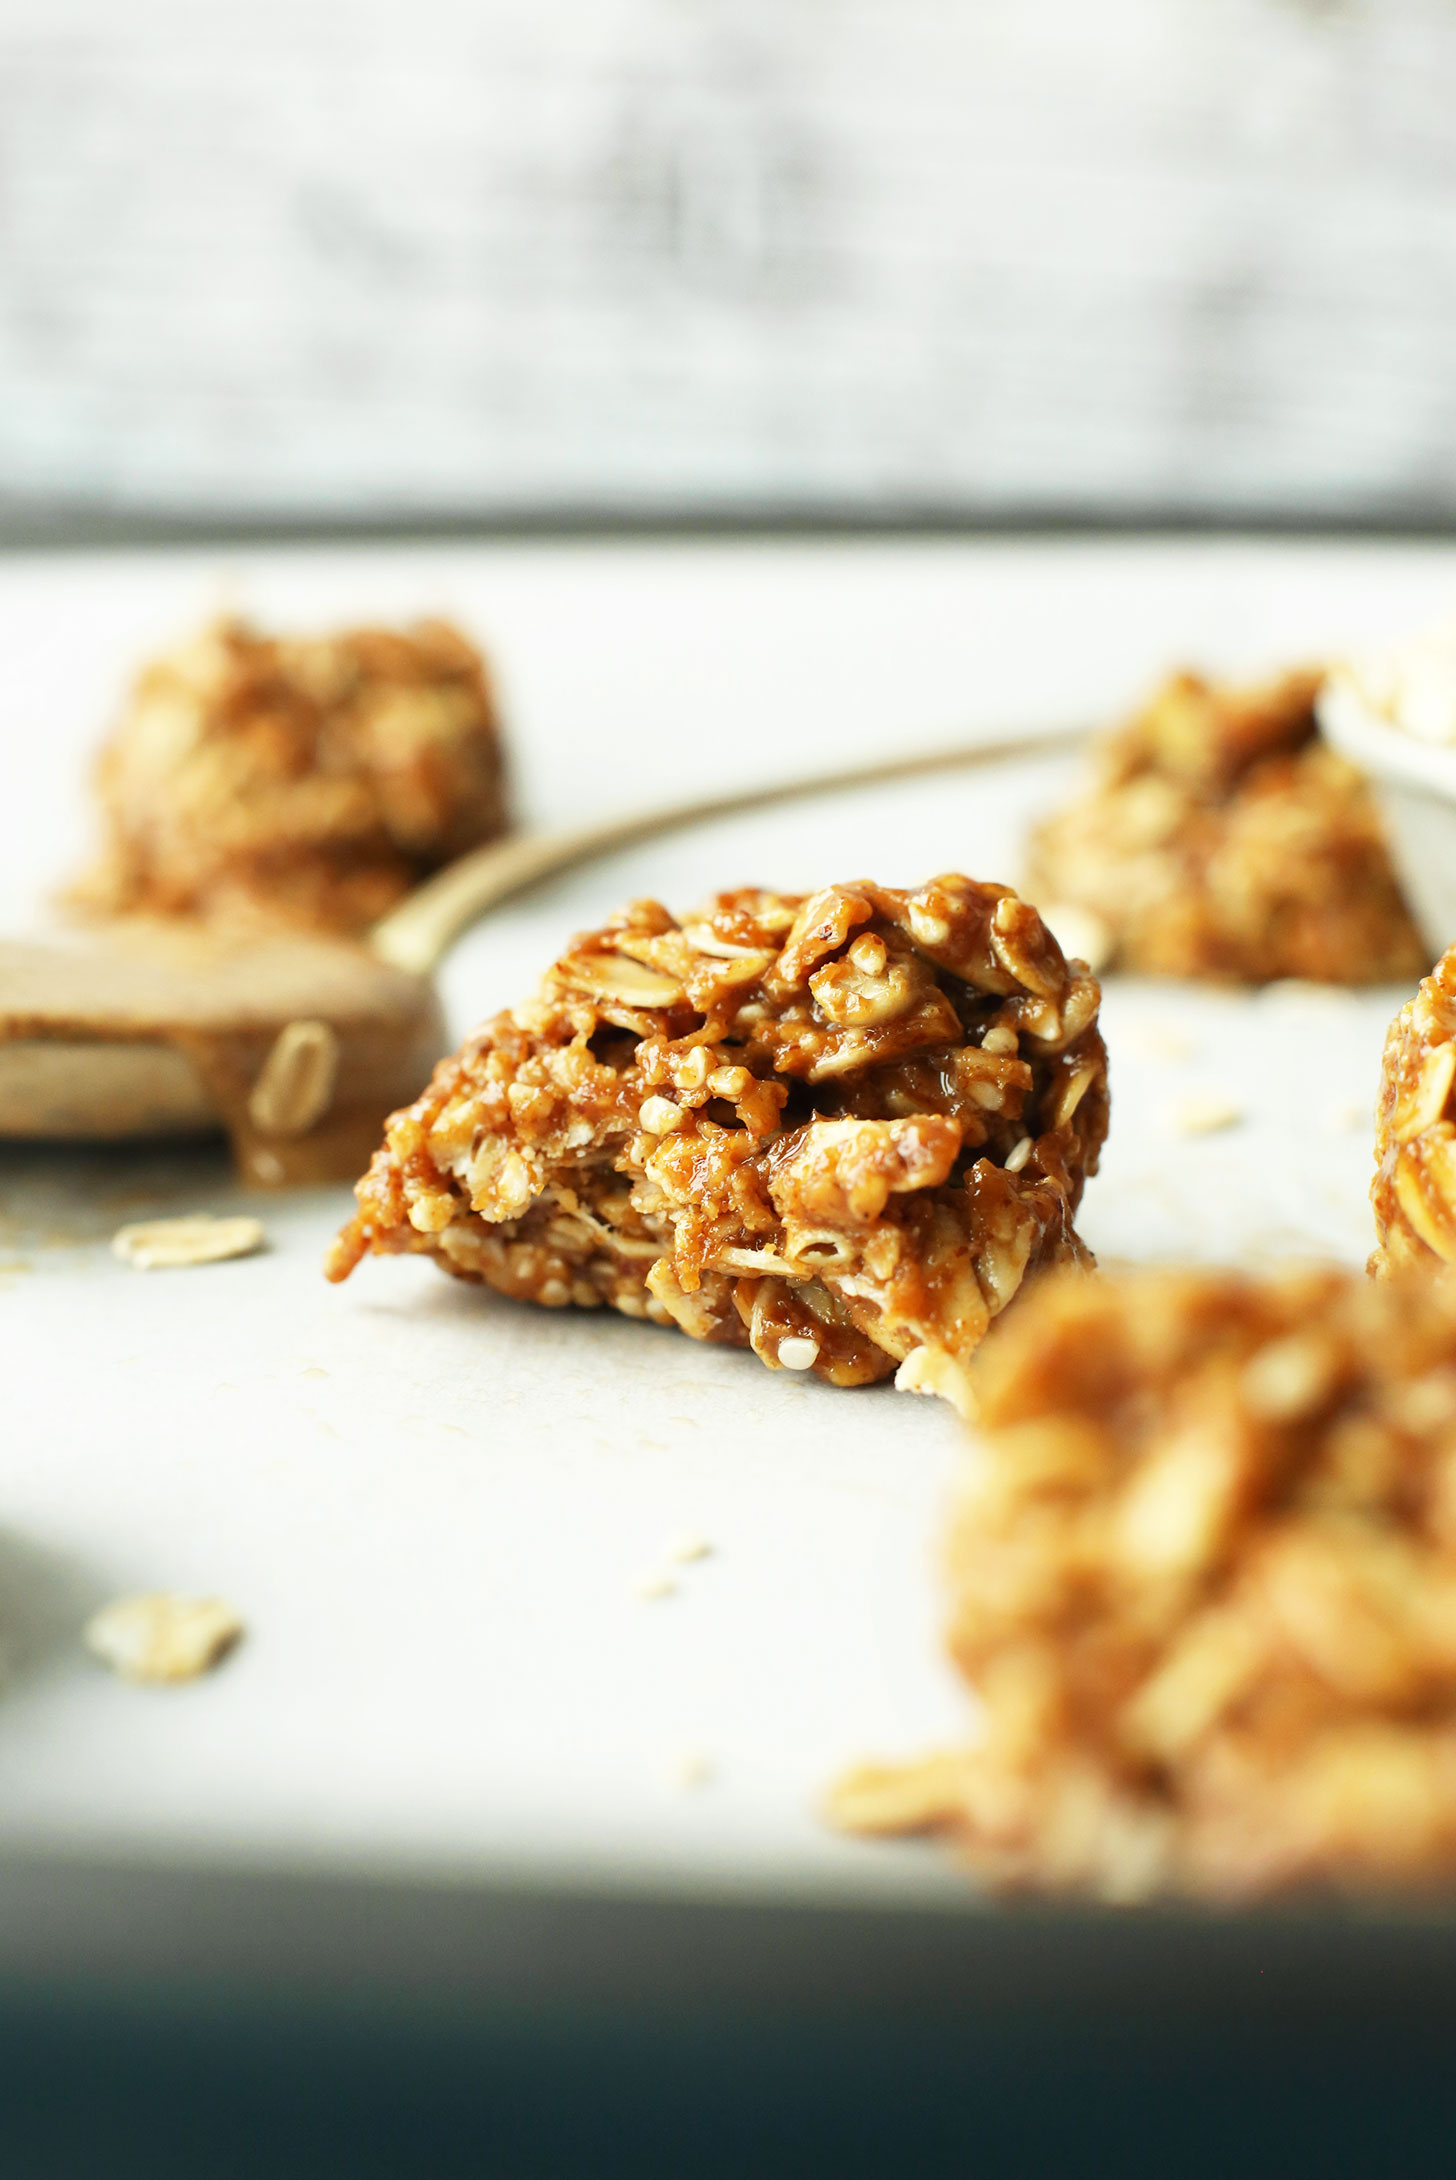 Partially eaten gluten-free vegan Almond Butter No Bake Cookie